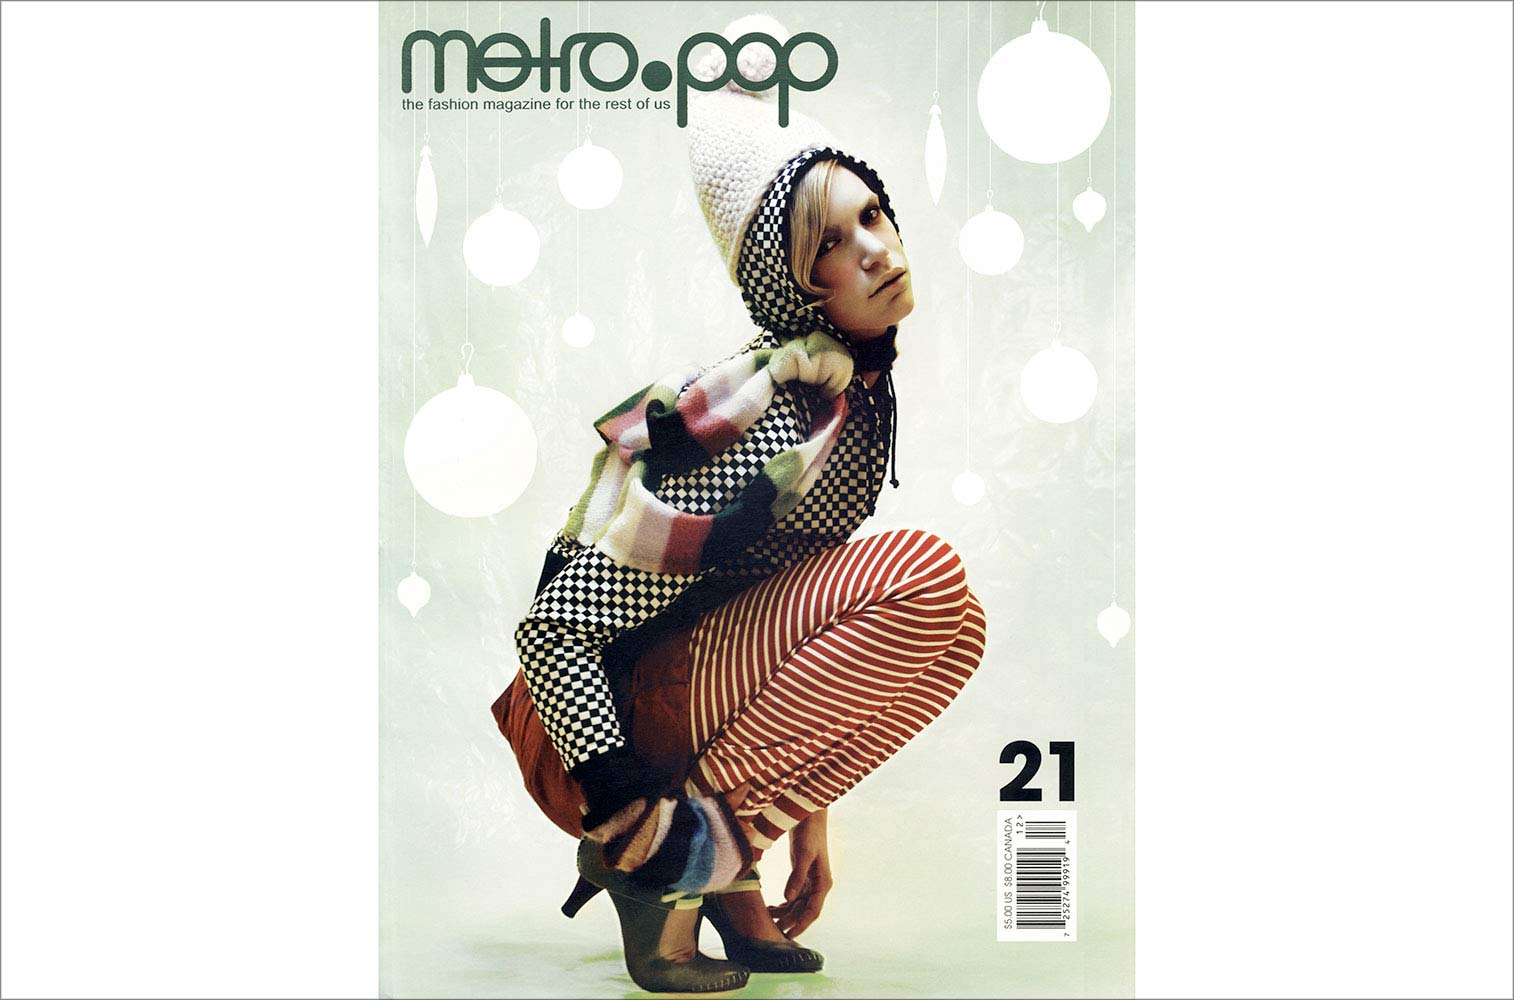 metropop-21_2005_1103_frosty_cover-w_outlined